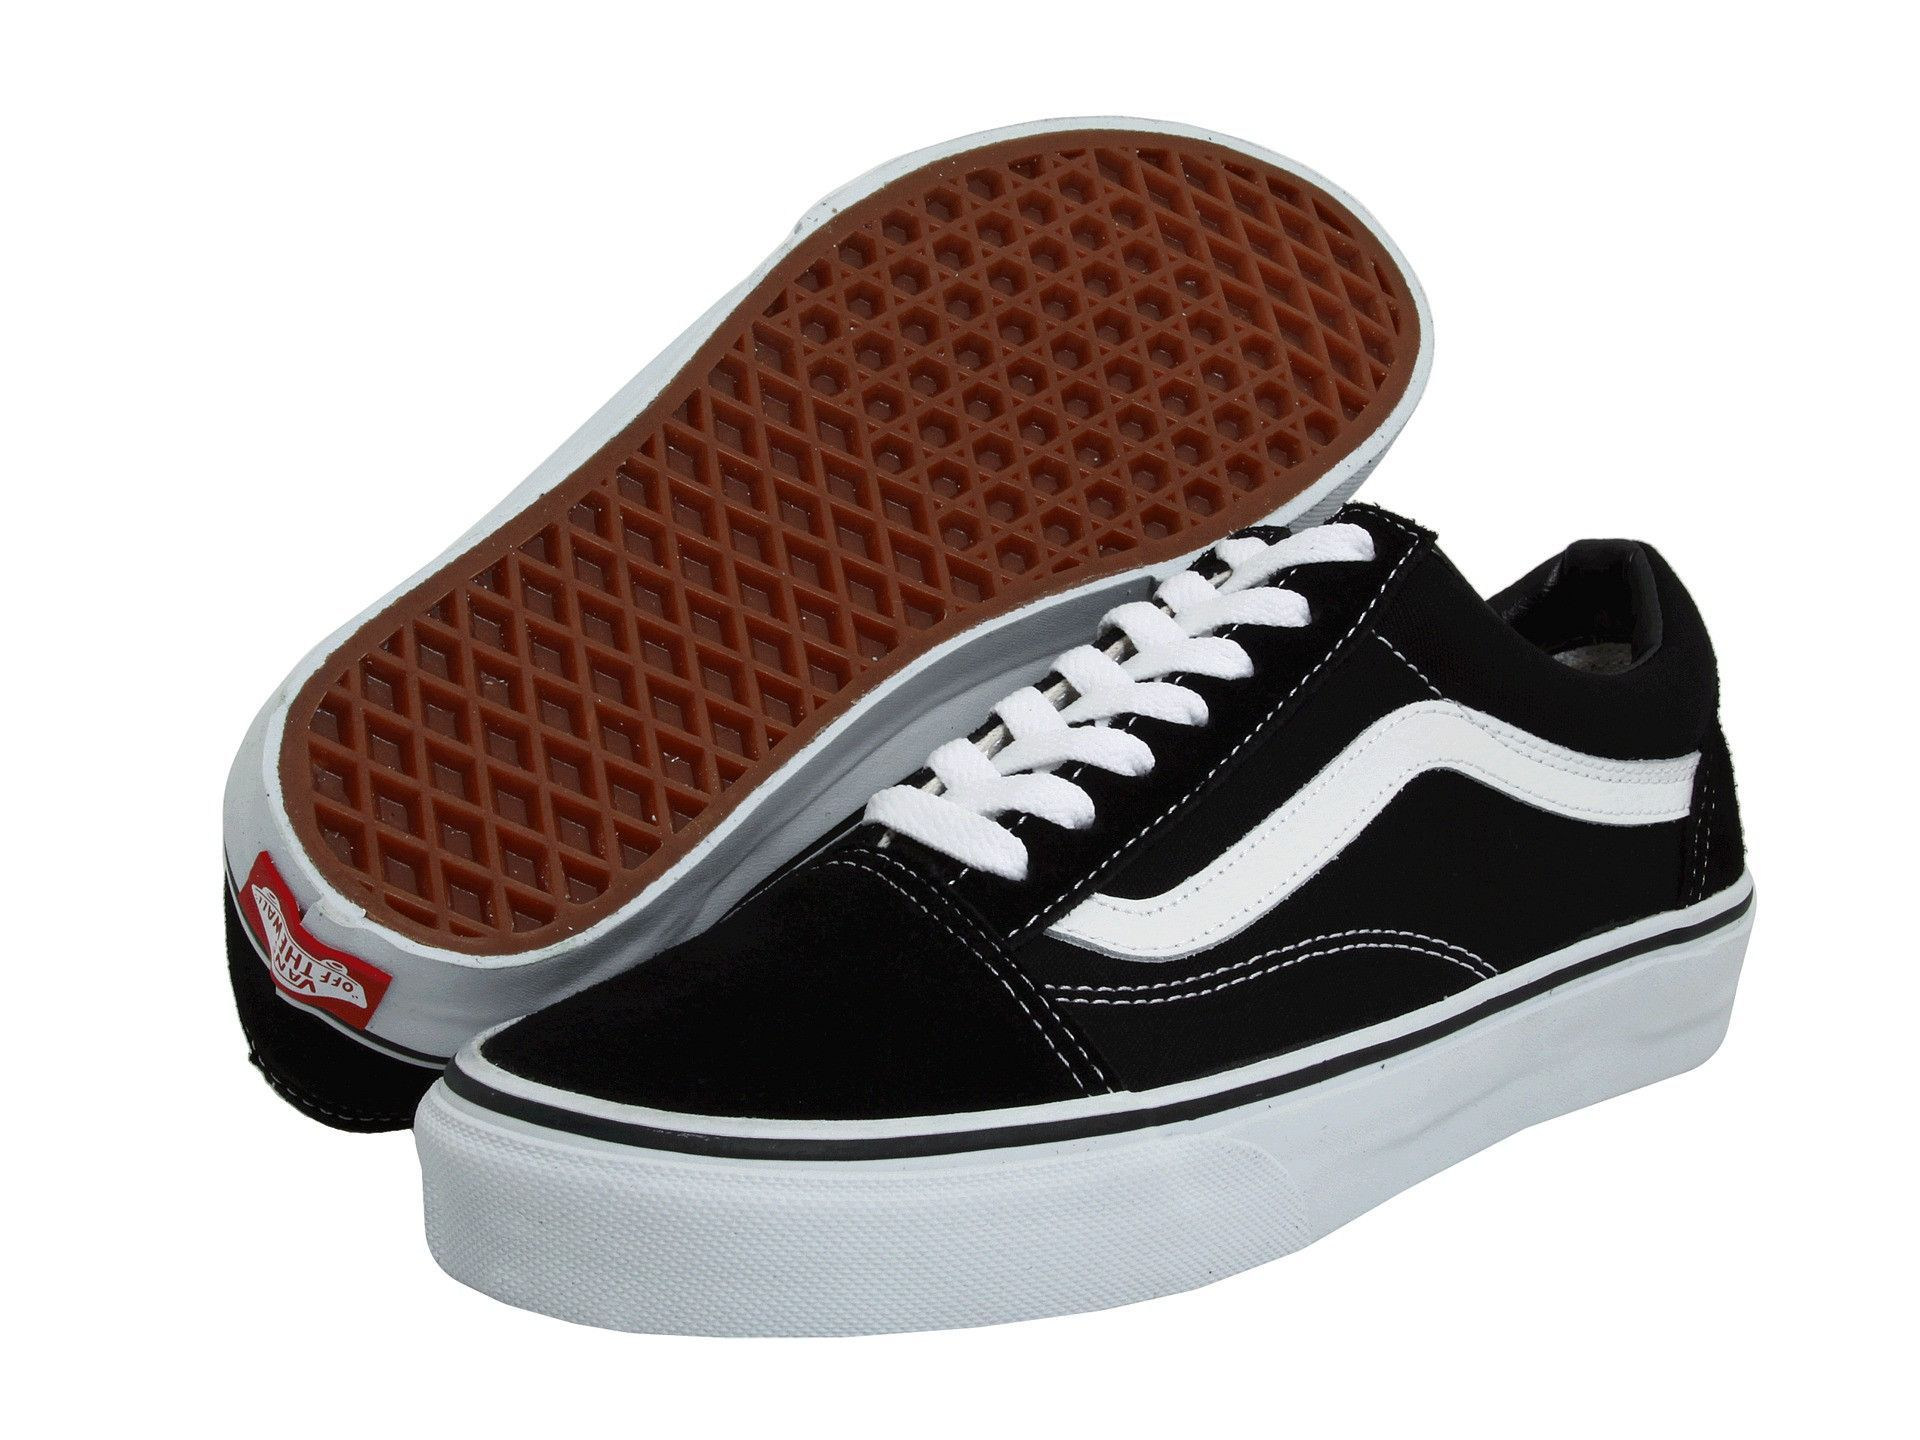 fdb1a06885ee4b VANS Old Skool Women